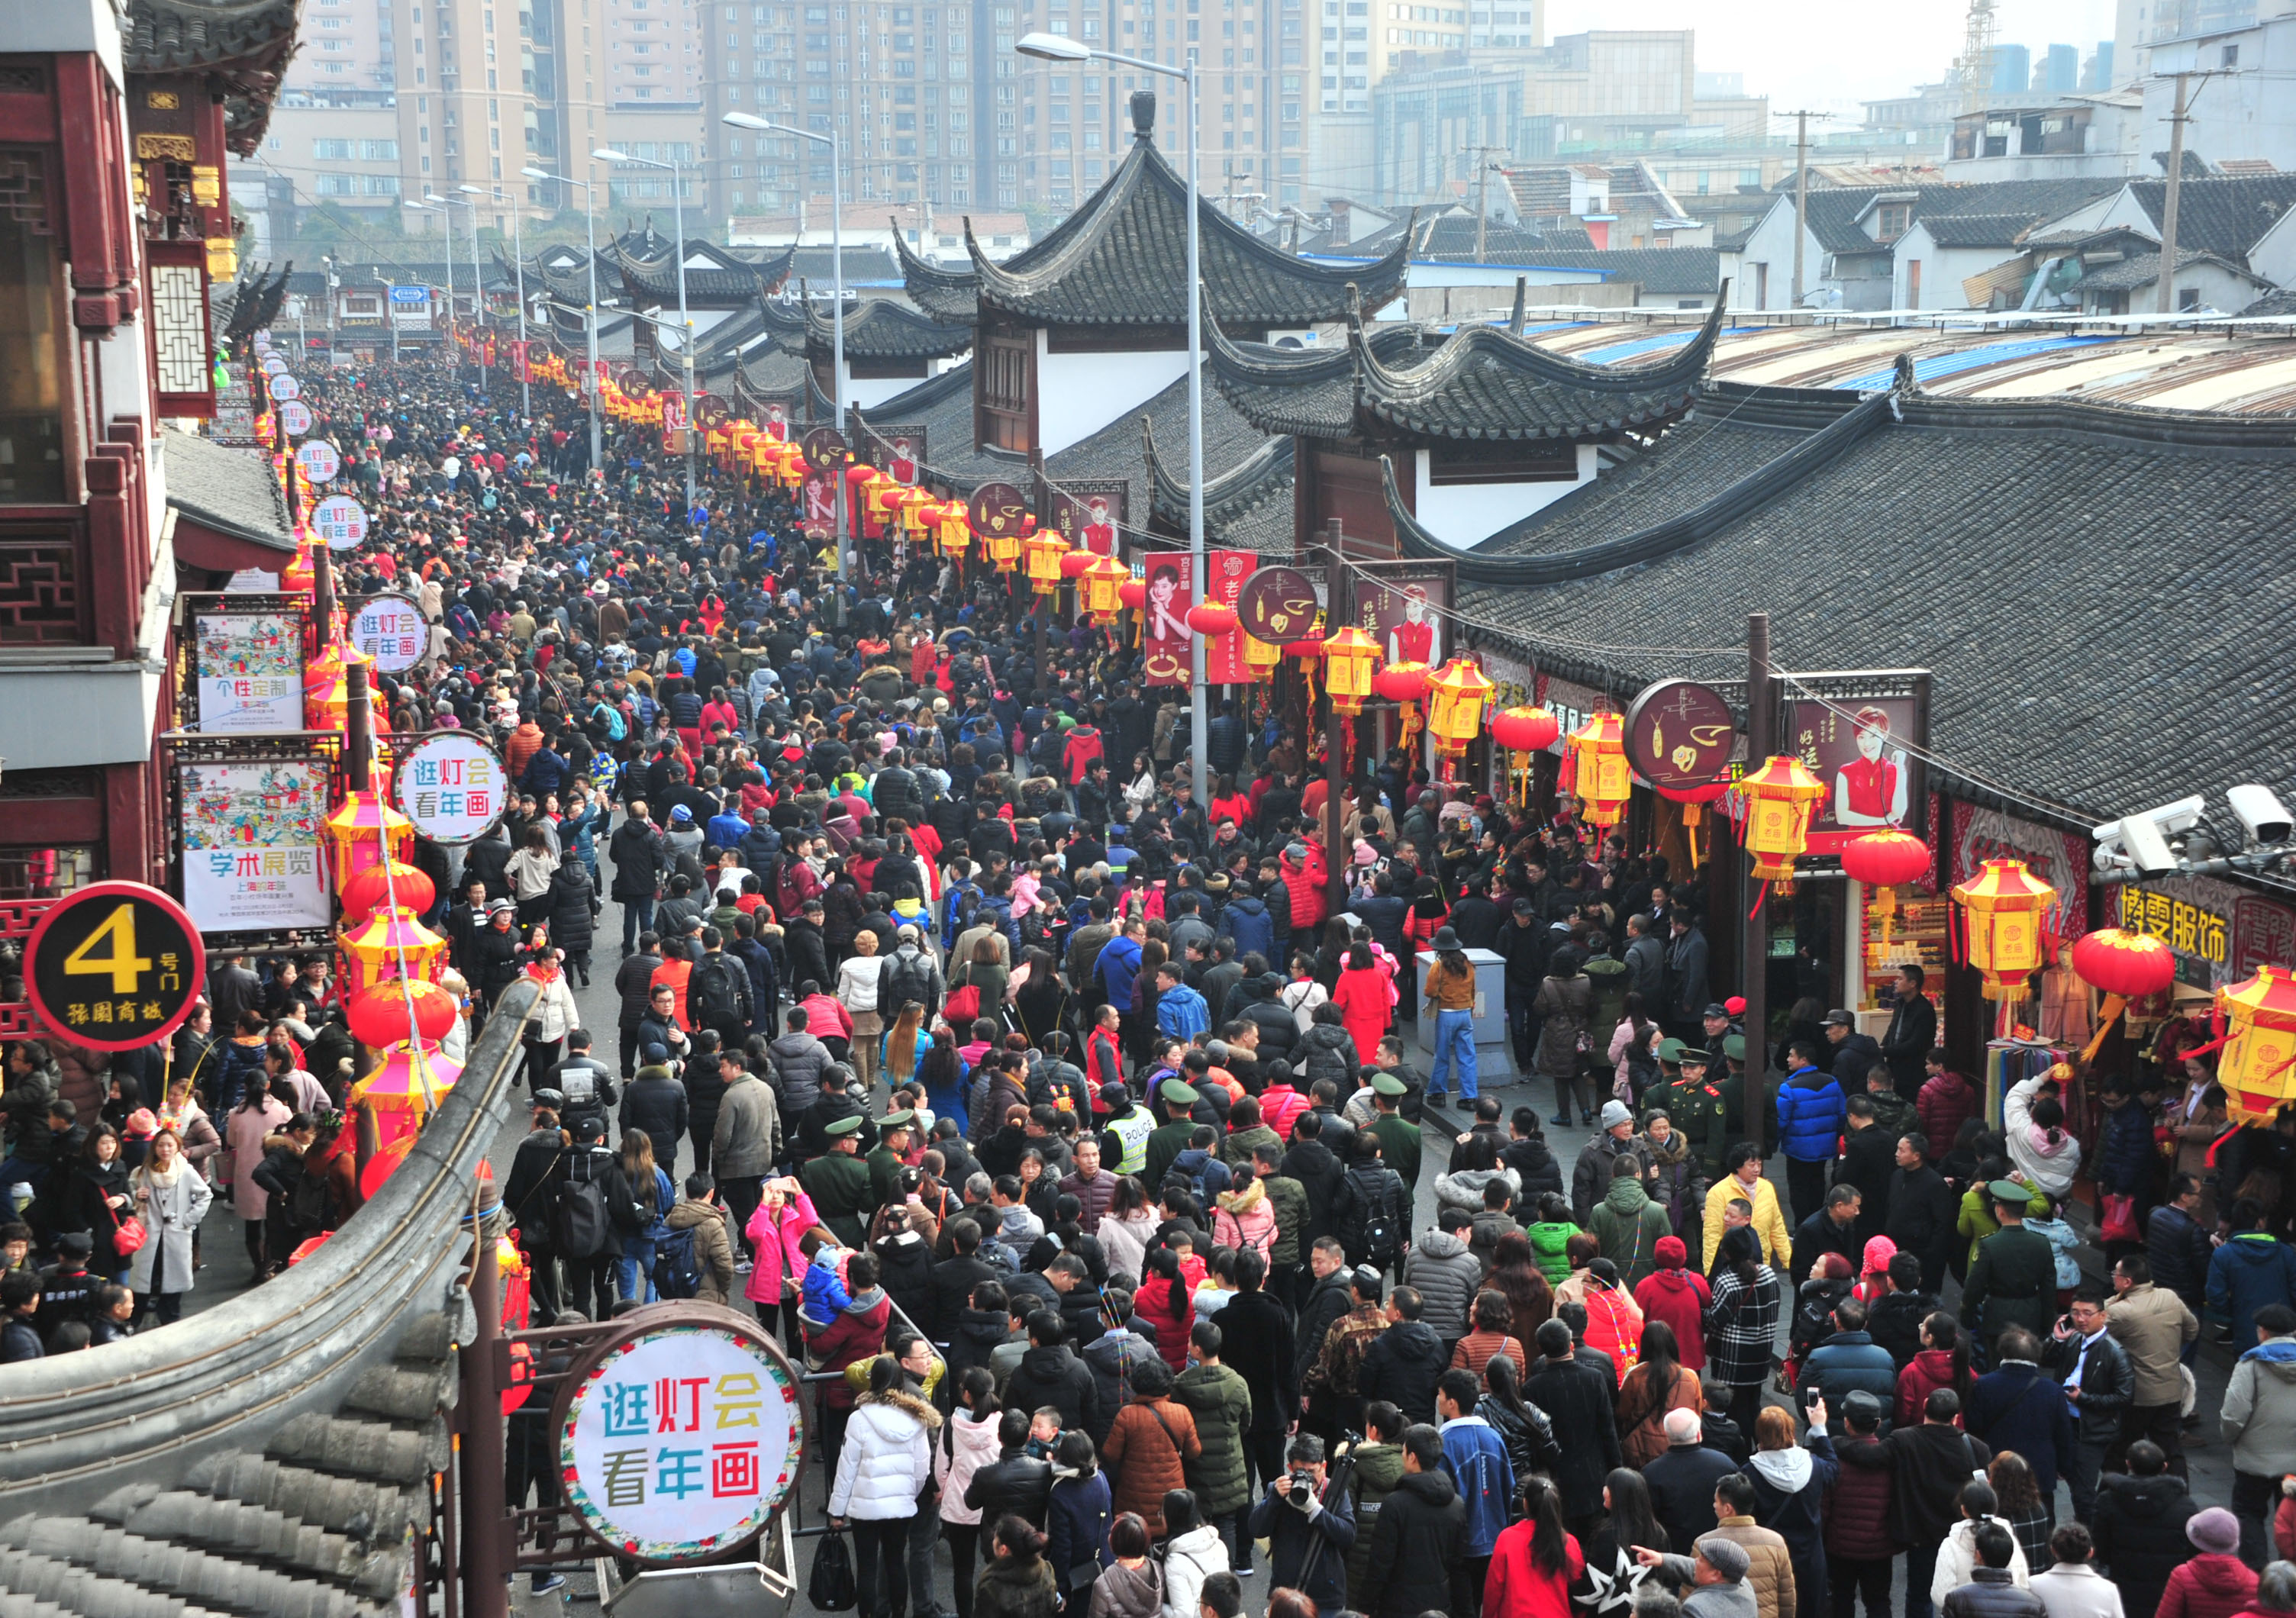 Tourists visit the Yuyuan Garden on February 17, 2018 in Shanghai, China (Getty Images)